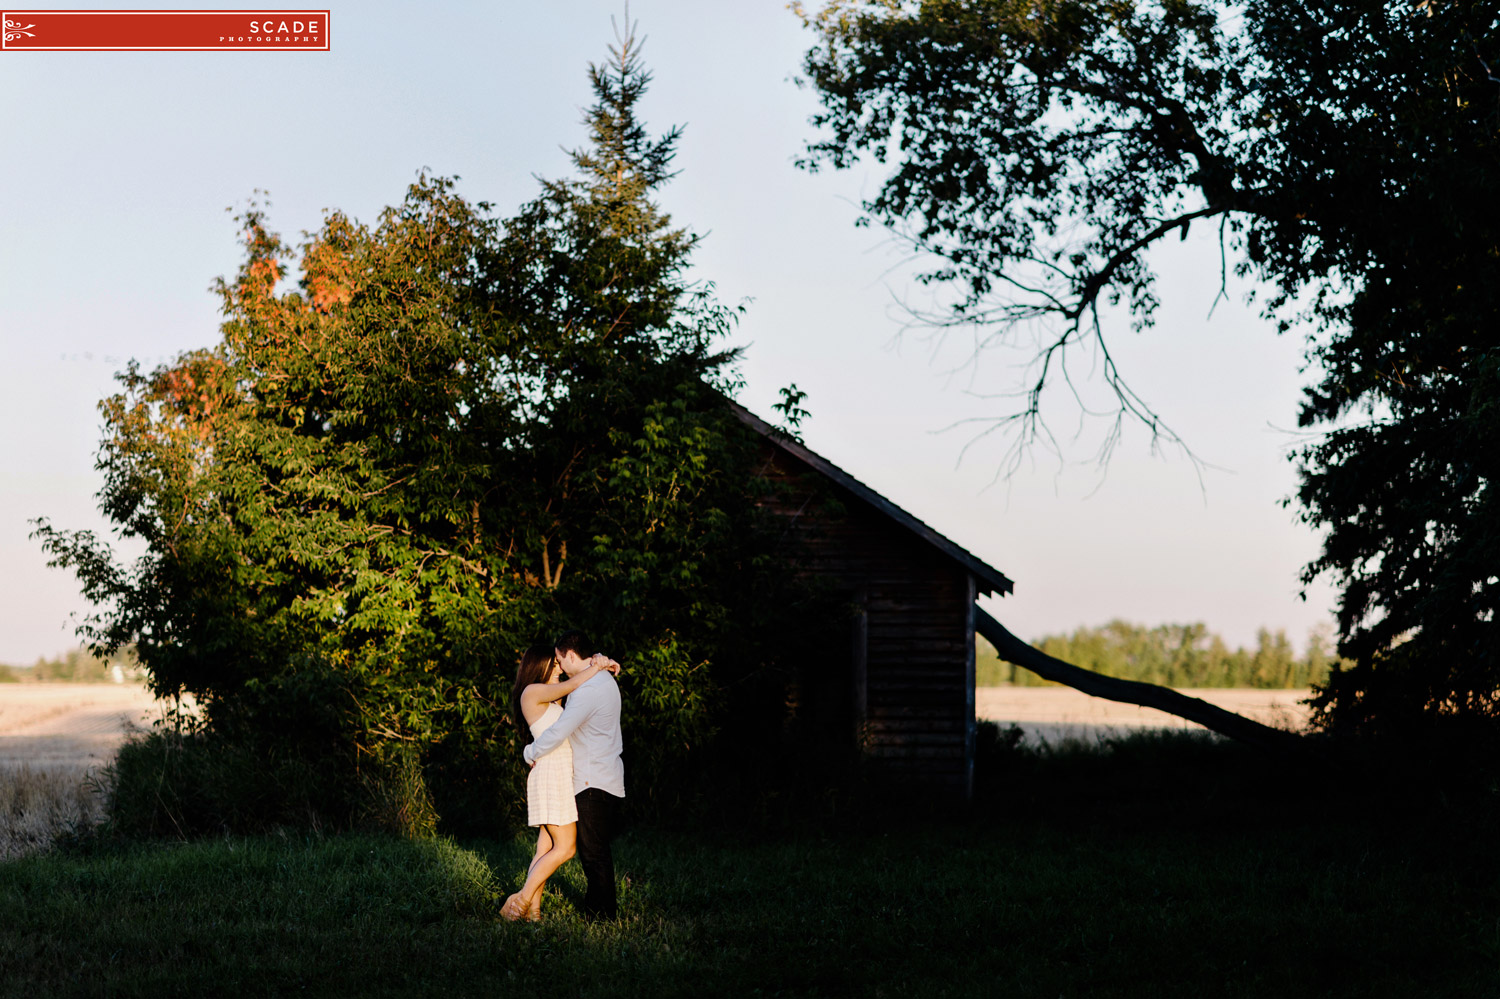 Fall Engagement Session - Laura and Anthony0011.JPG